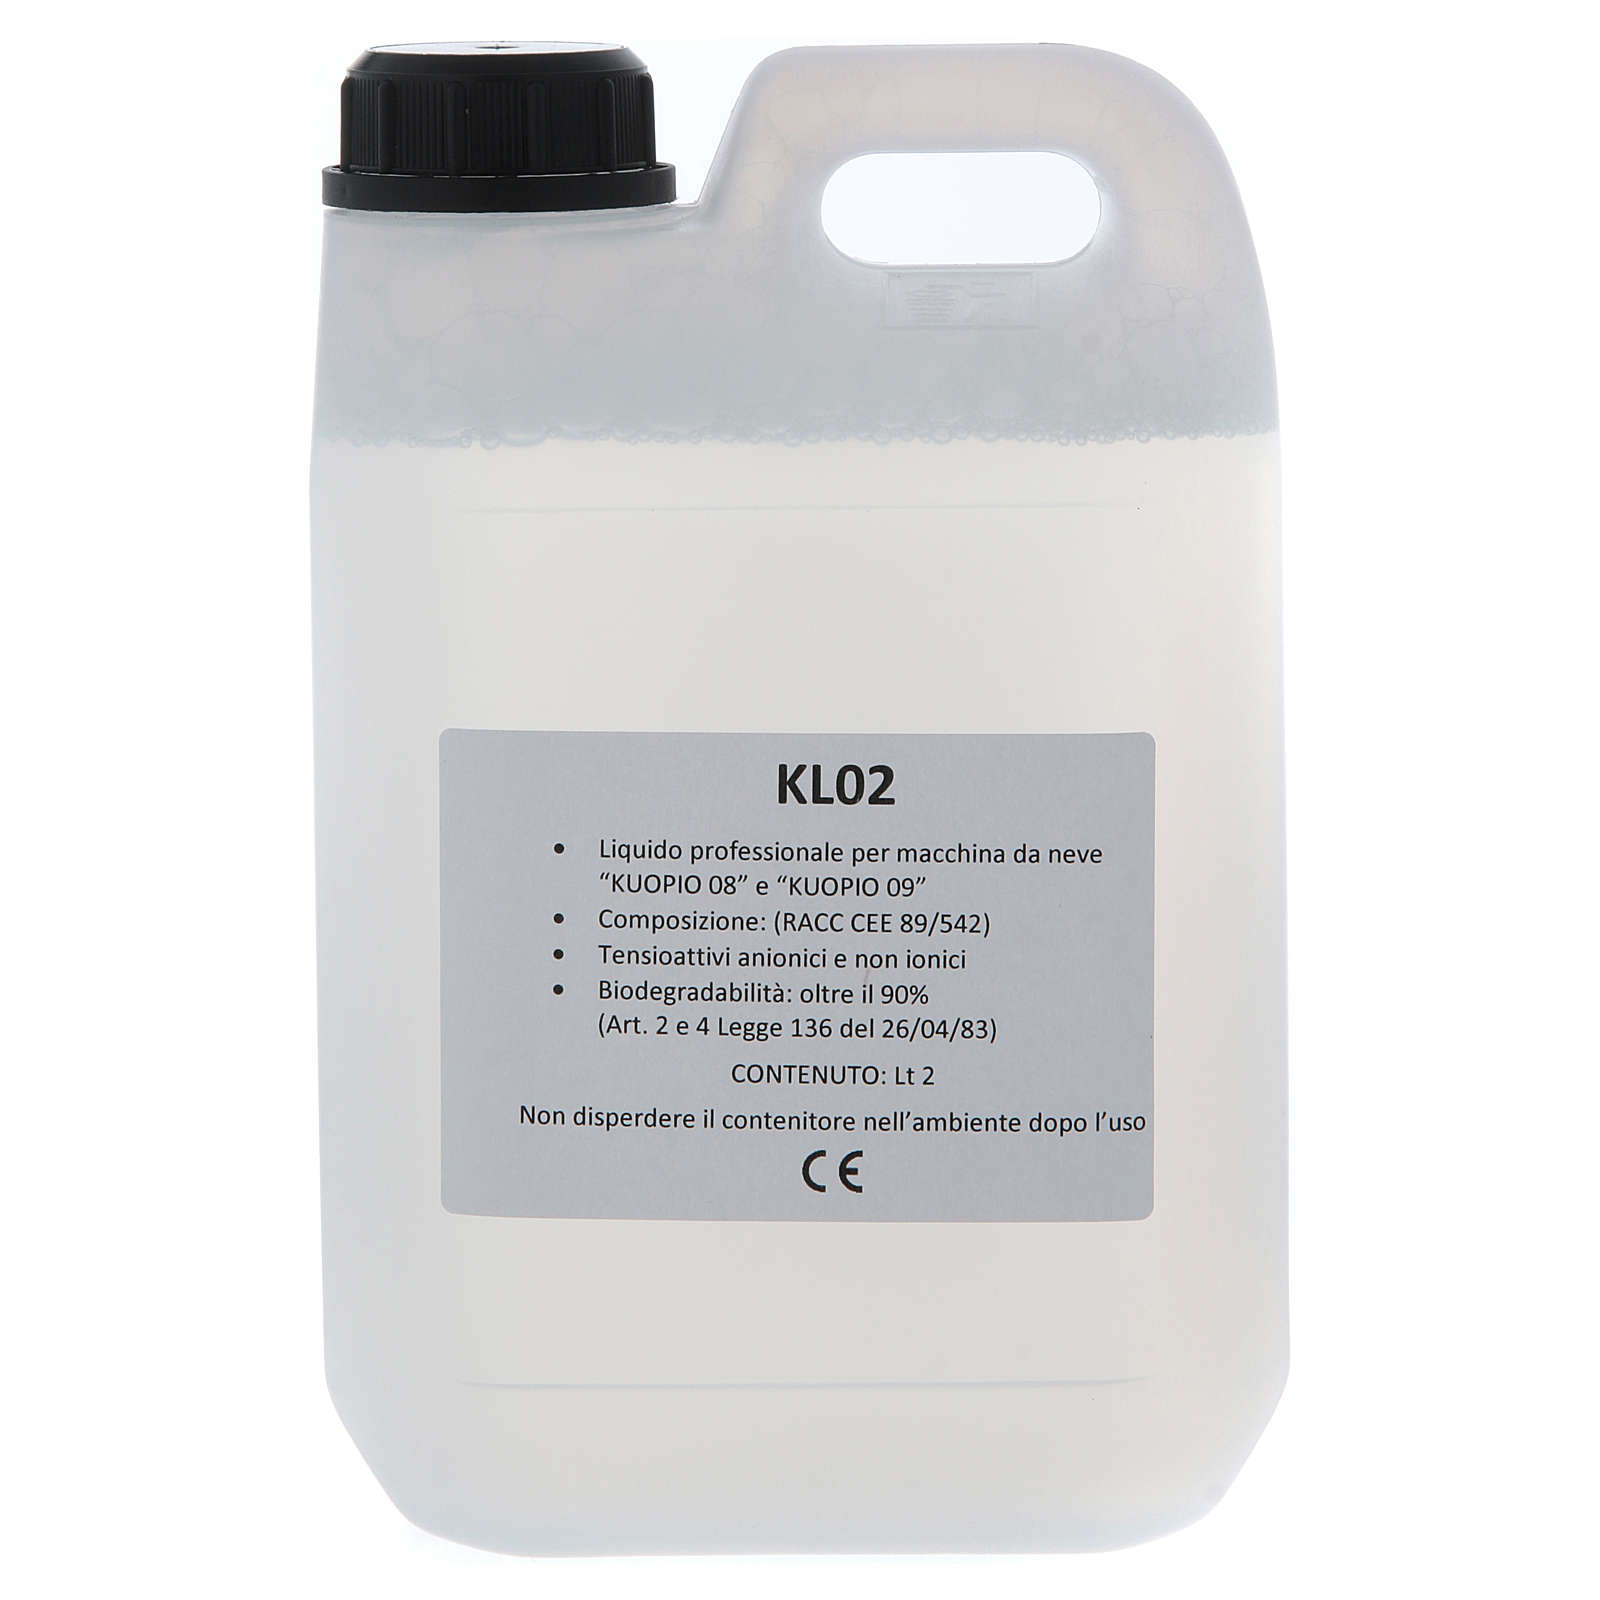 Liquid snow for Kuopio snow machines, 2litres 4